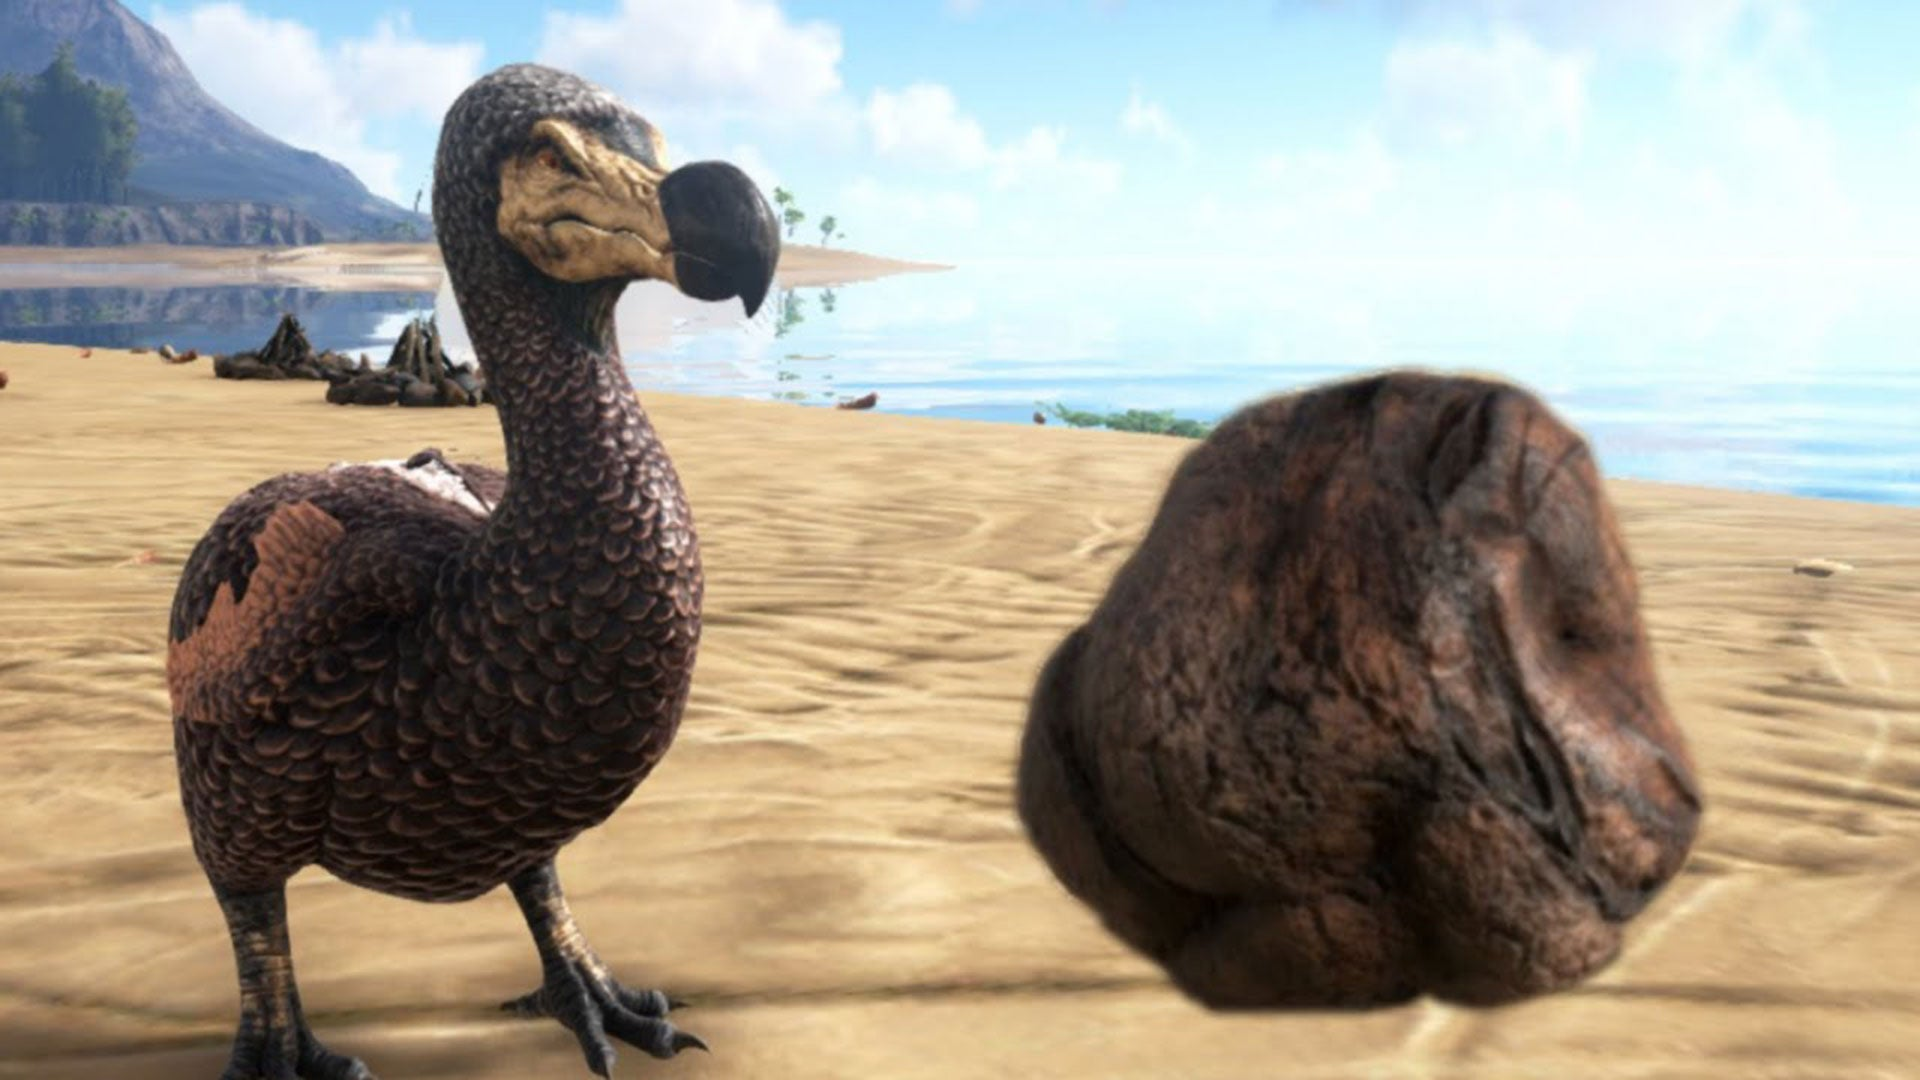 Ark: Survival Evolved Added Poop To Avoid Putting In A Suicide Key